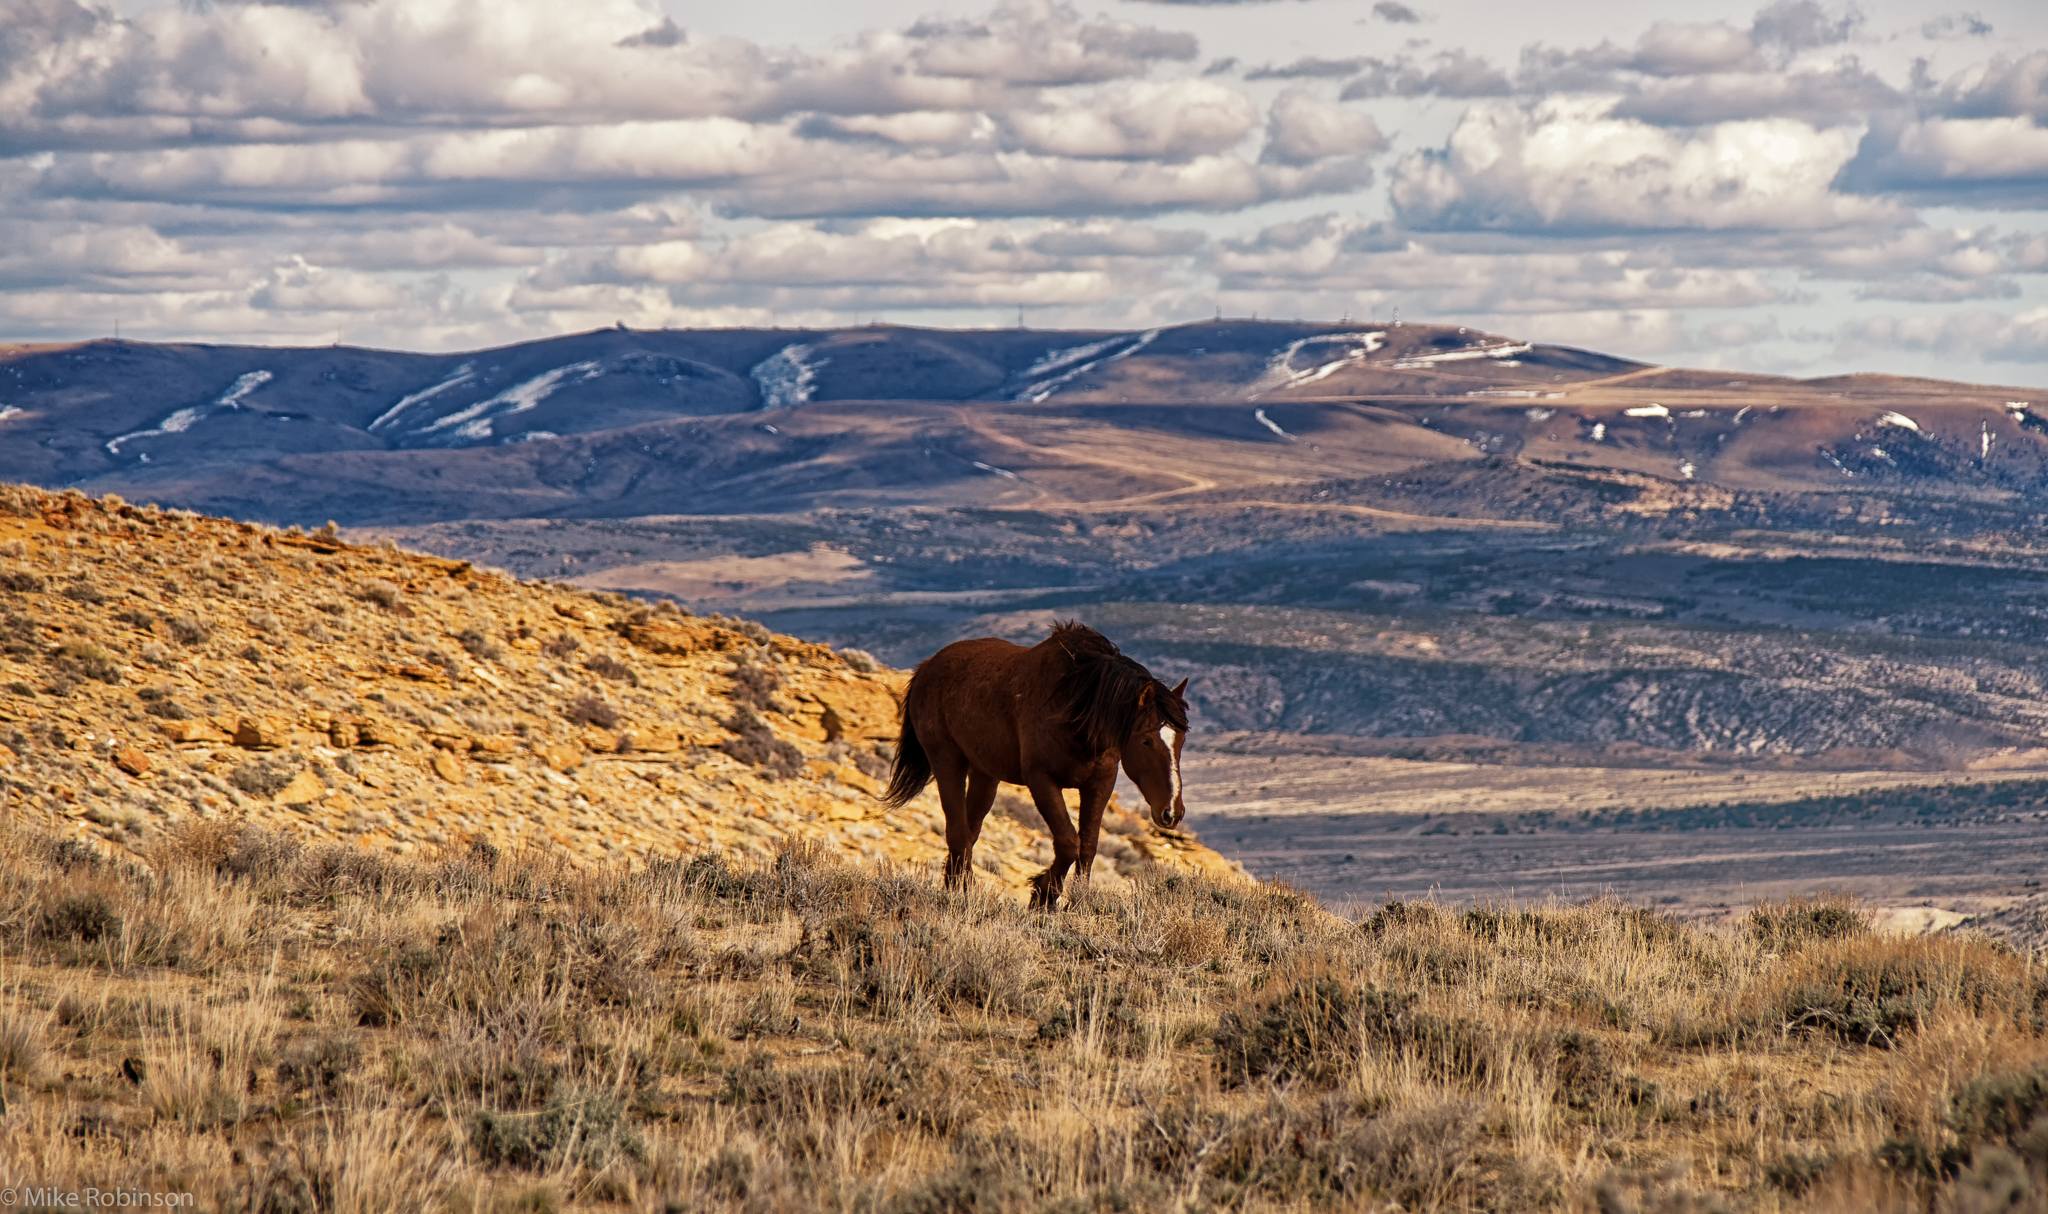 Wild horse wallpapers pictures images - Hd wilderness wallpapers ...